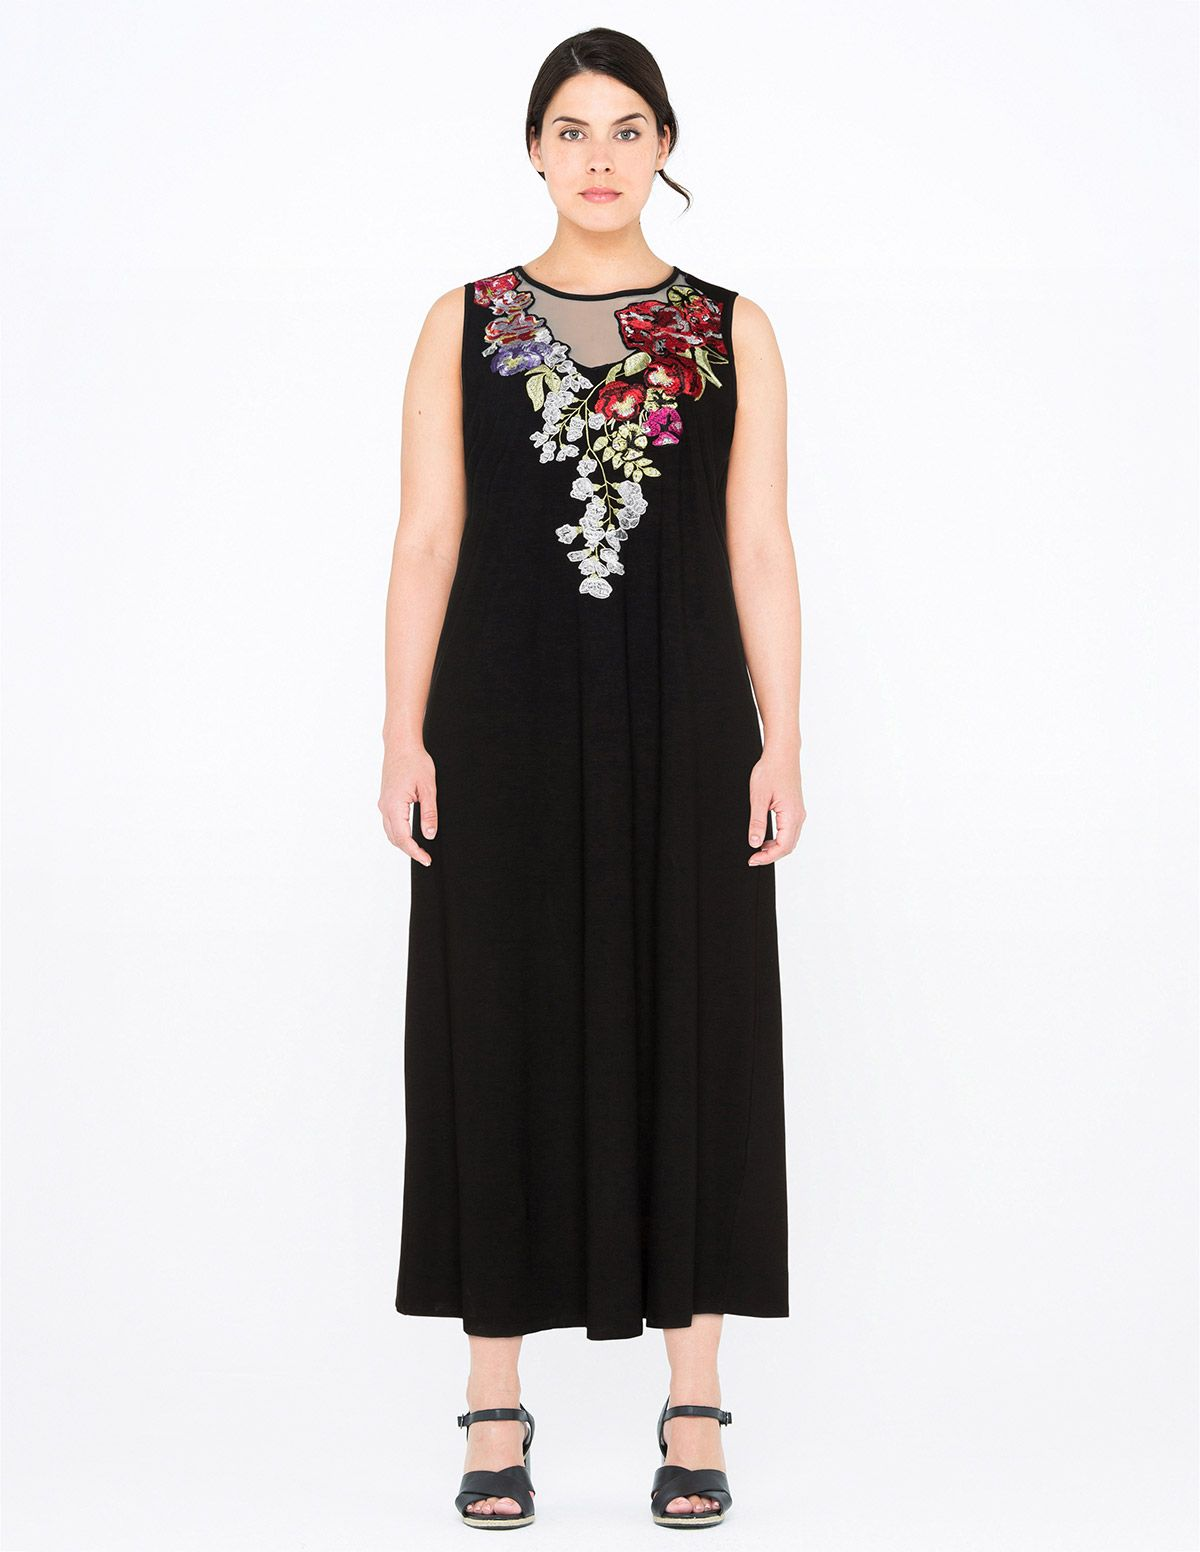 Cn g embroidered jersey maxi dress in black multicolour boho